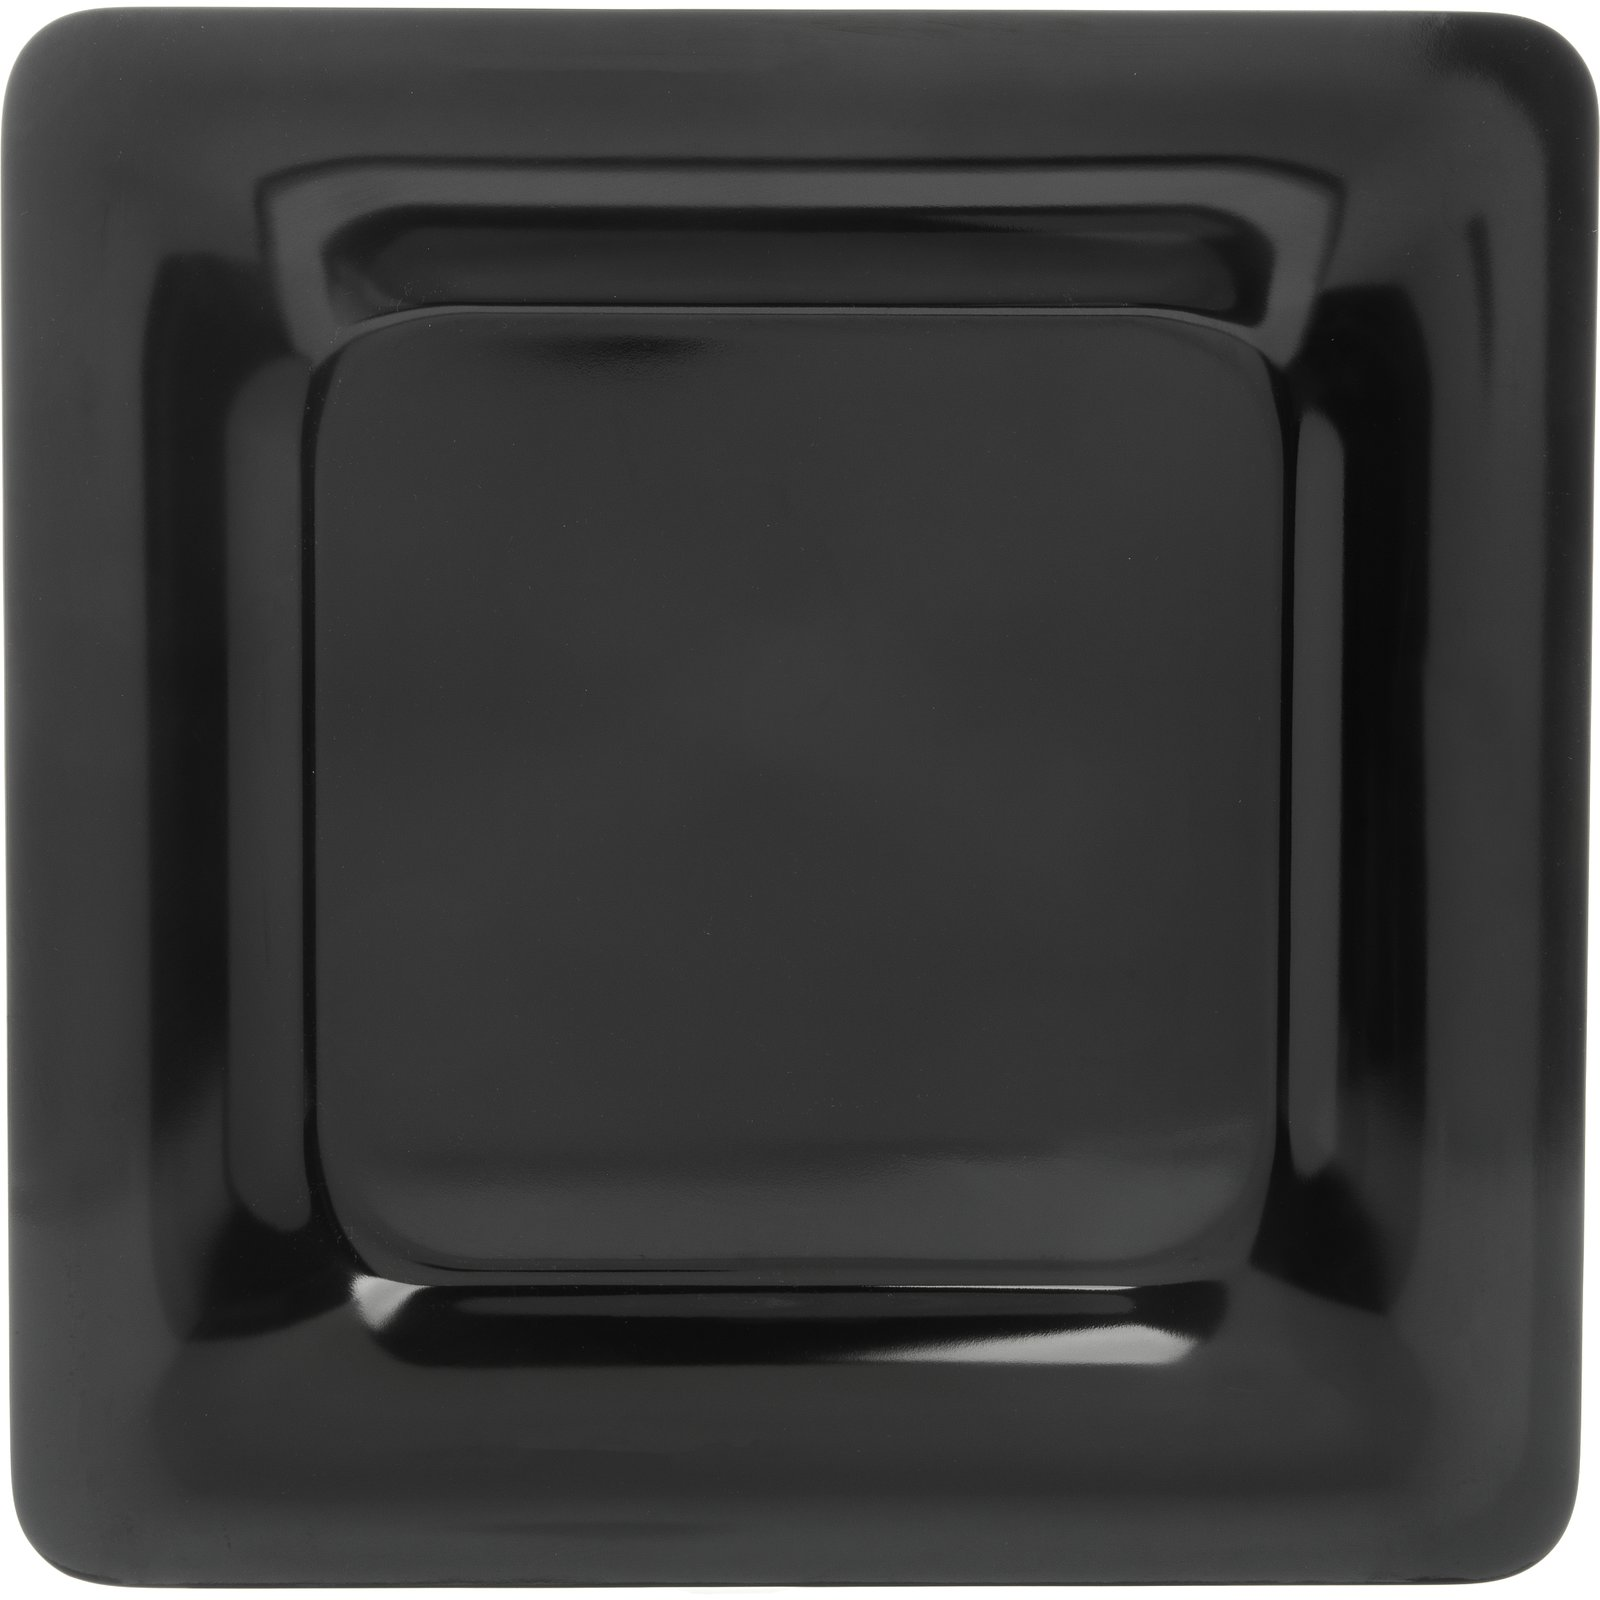 ... 4440003 - Designer Displayware™ Wide Rim Square Plate 12  - Black  sc 1 st  Carlisle FoodService Products : square plate designs - pezcame.com